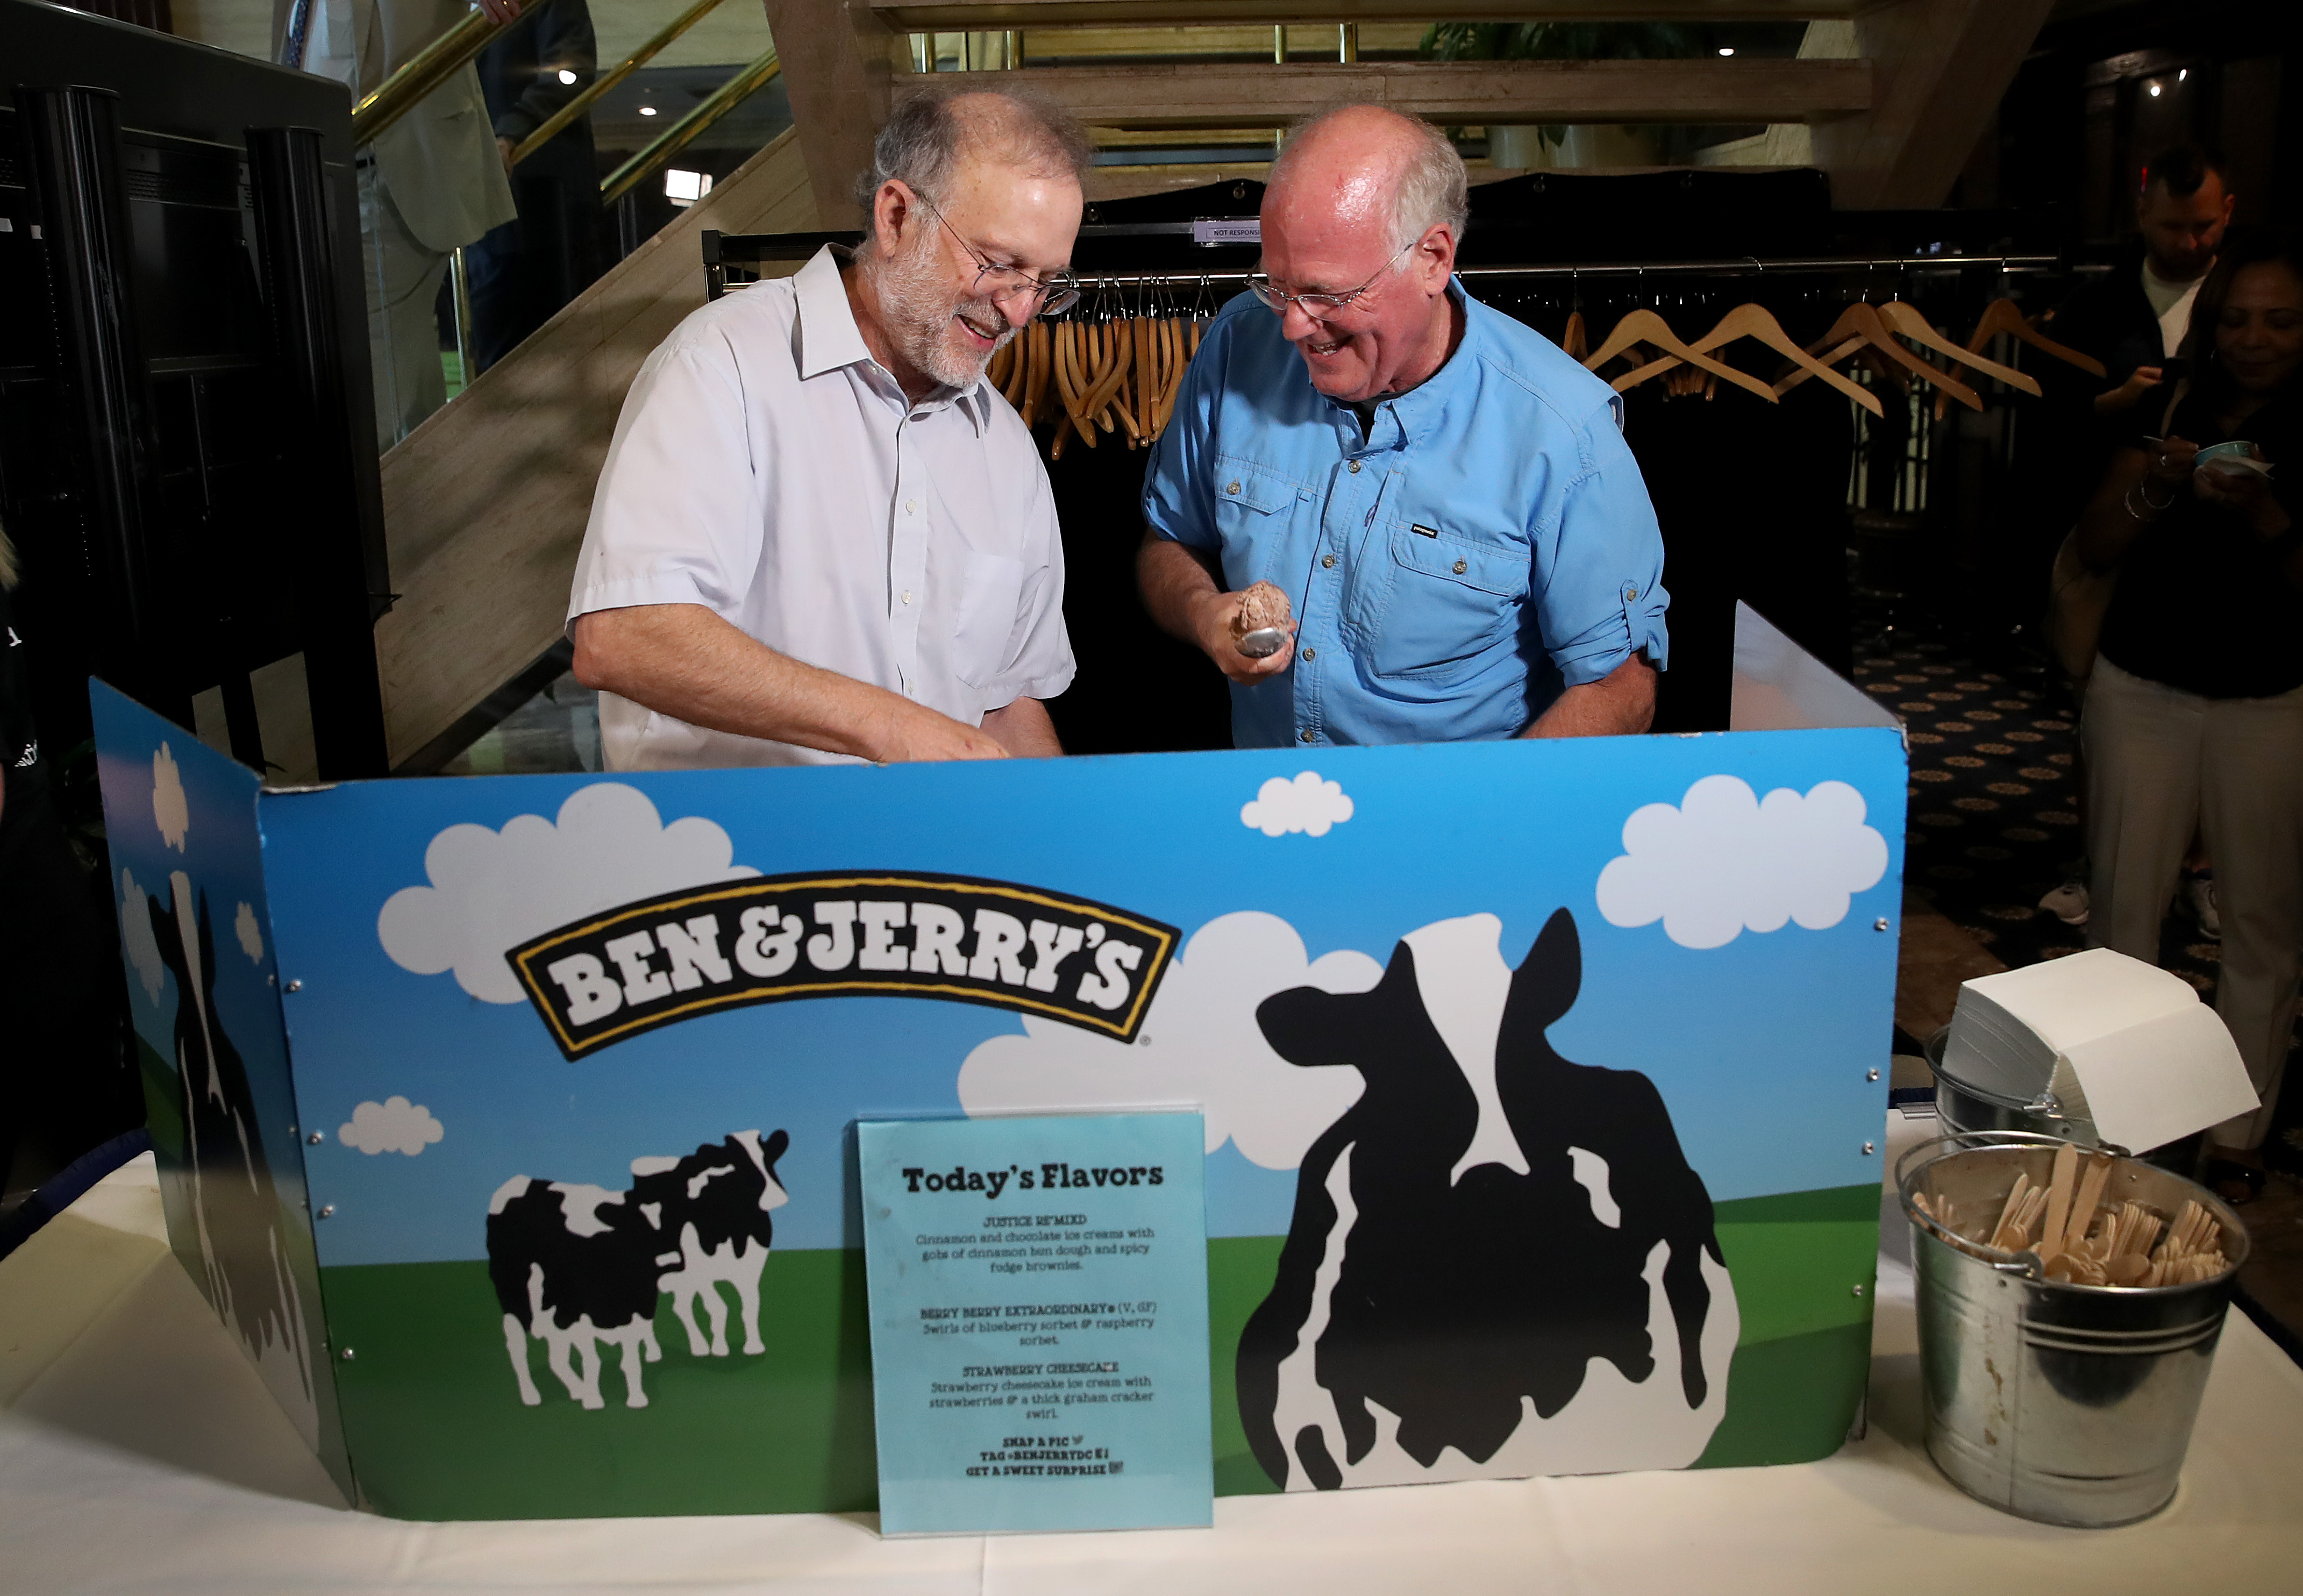 Ben & Jerry's wants to make it easier to sue cops who abuse their authority